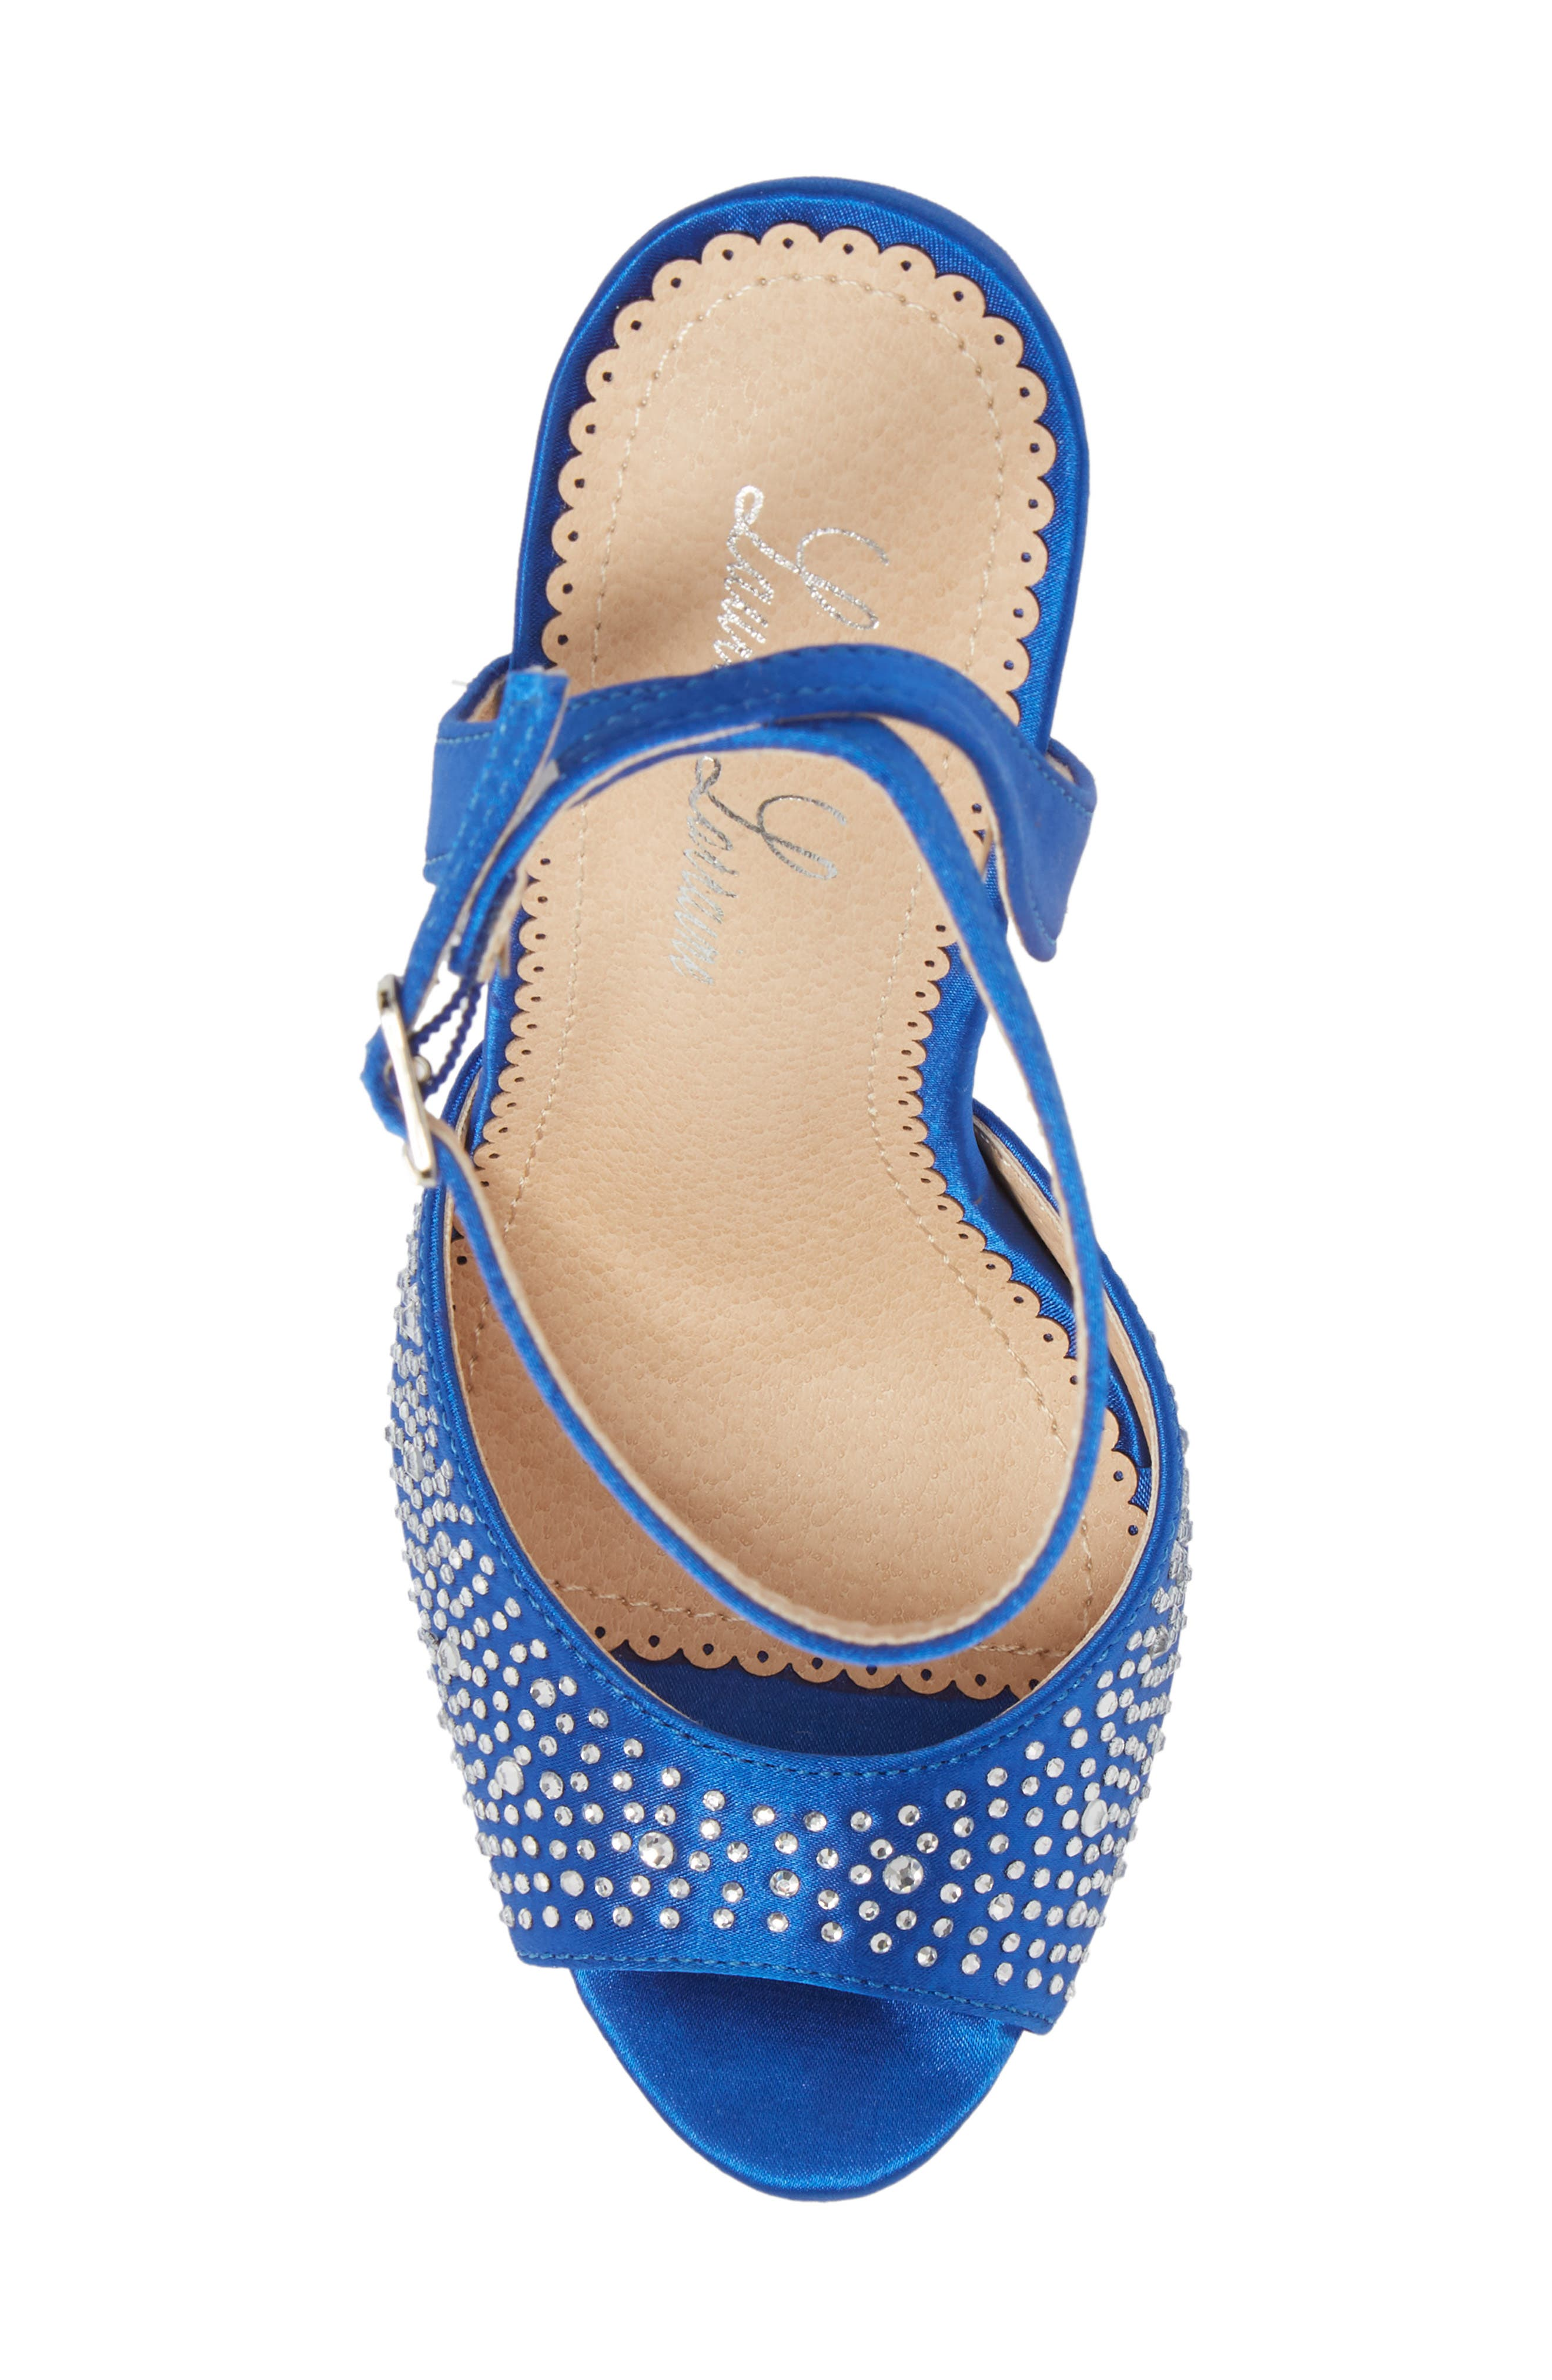 Tavi Sandal,                             Alternate thumbnail 5, color,                             Royal Blue Fabric